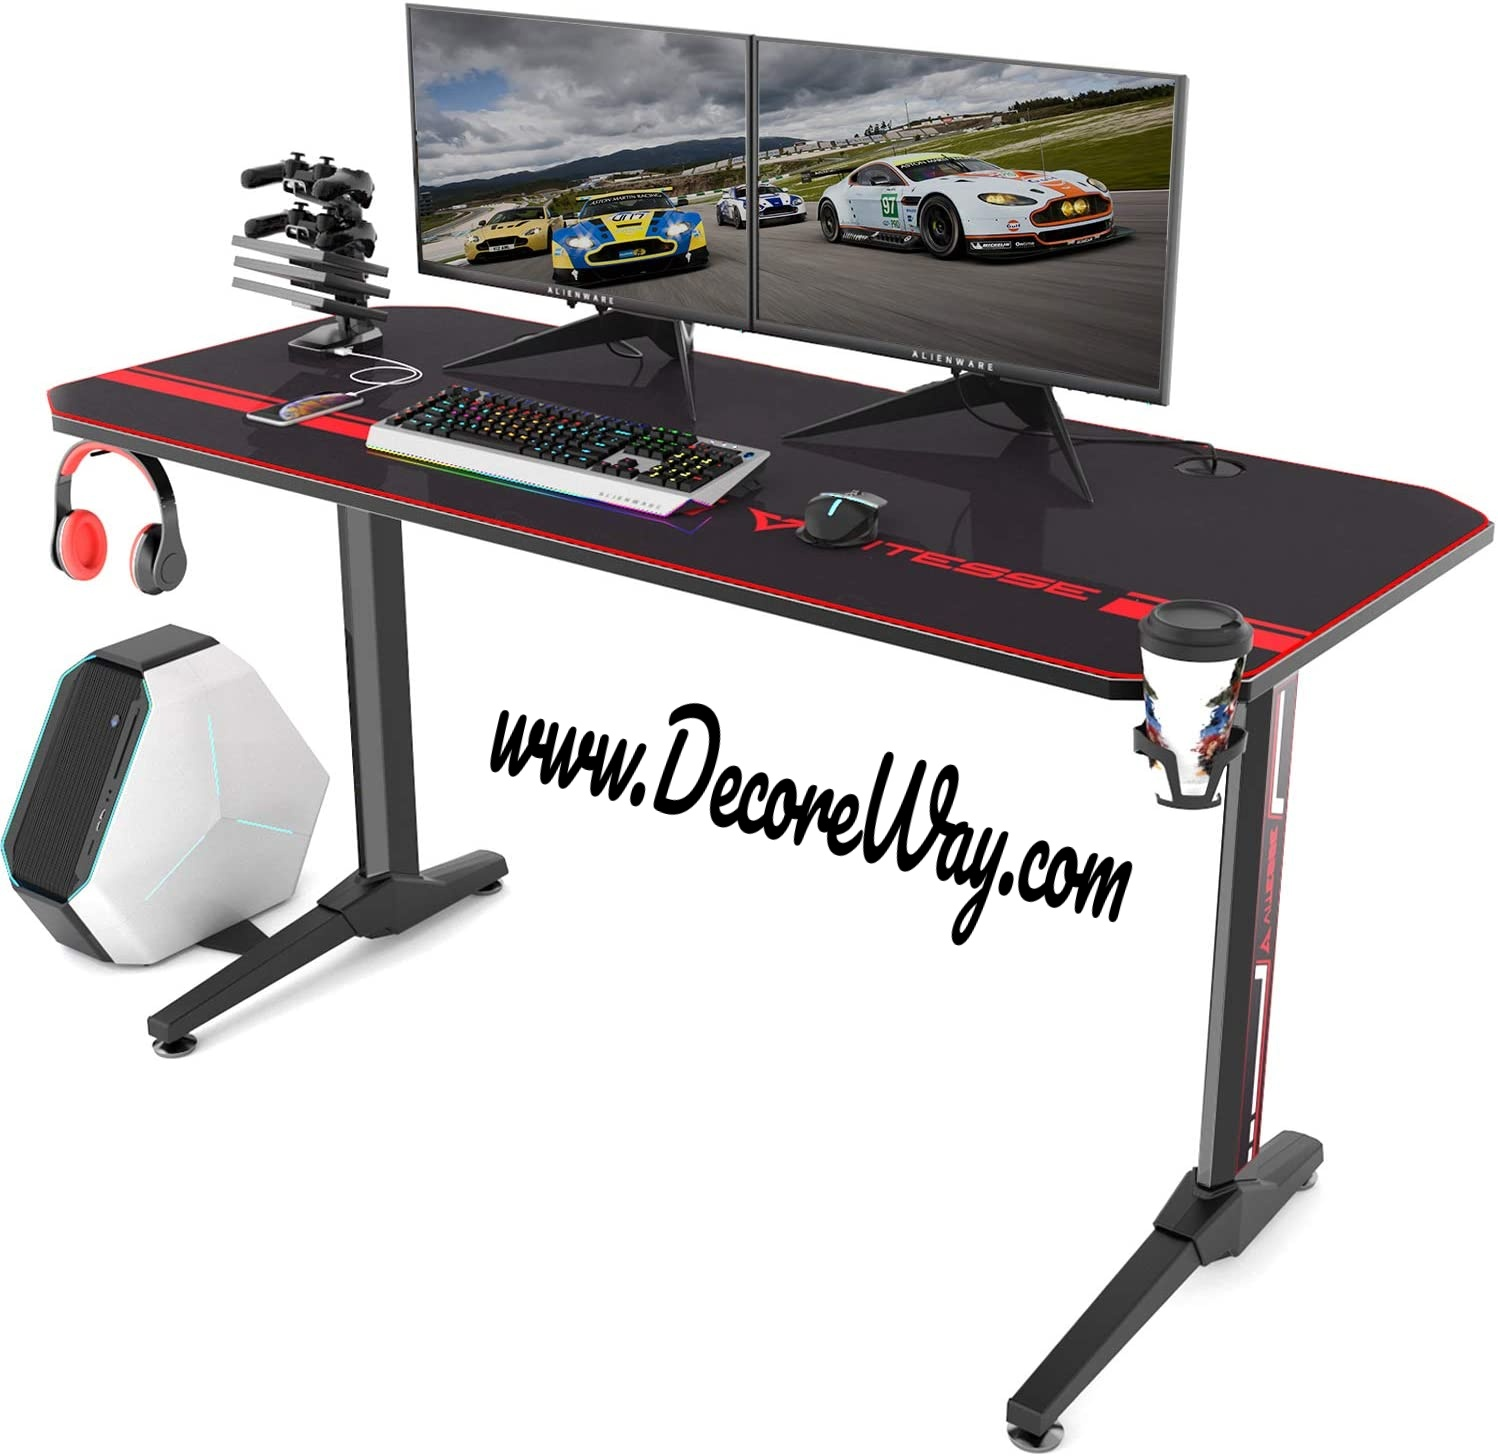 Racing Style Computer Gaming Desk with Free Mouse pad And USB